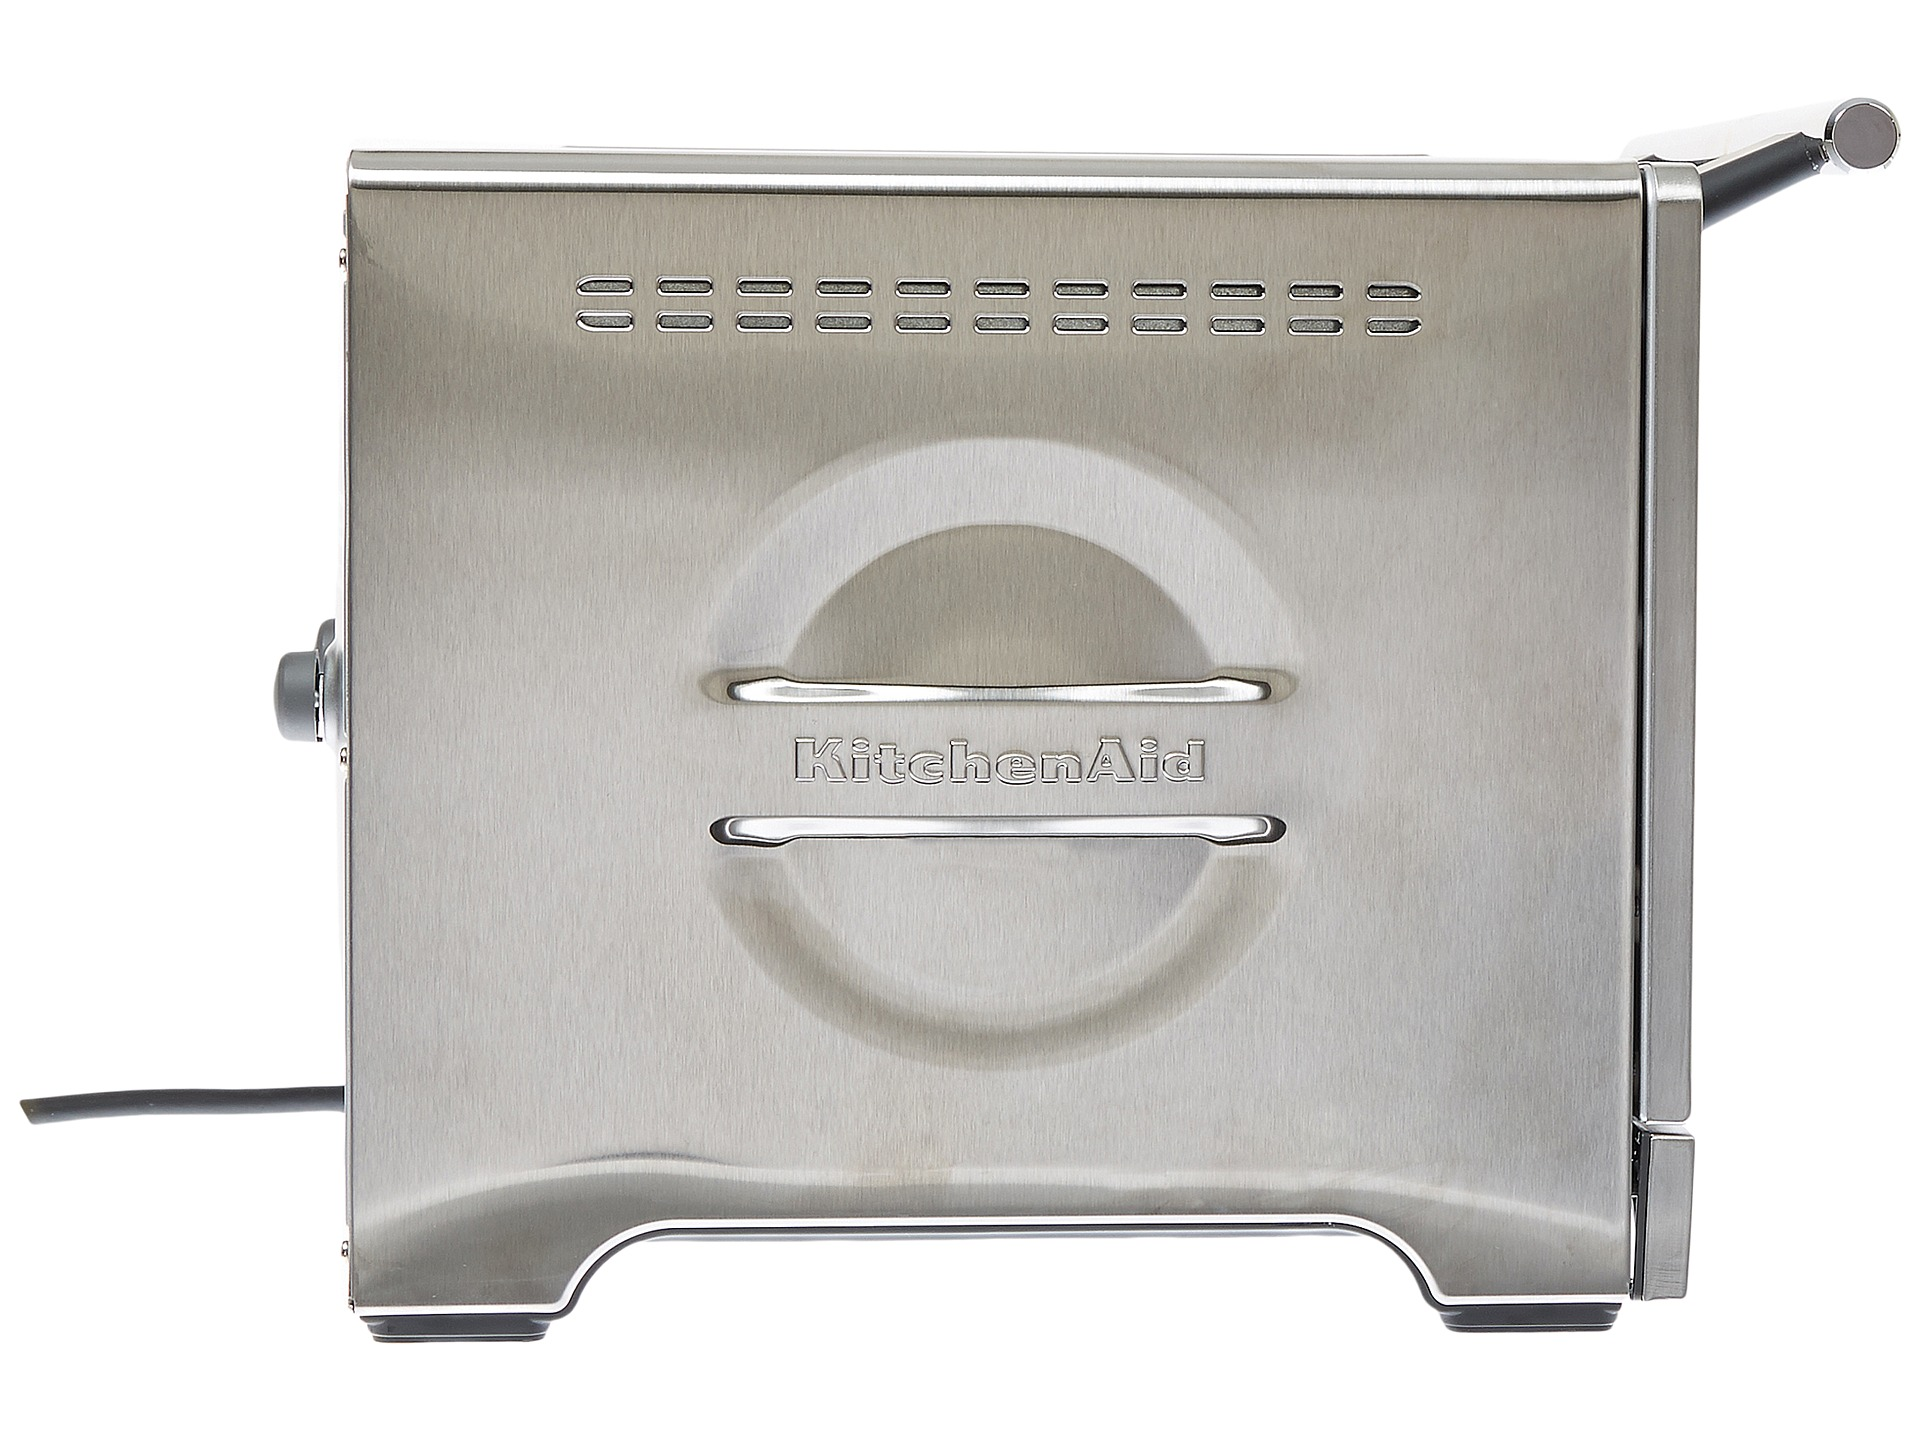 Kitchenaid Countertop Convection Oven Kco273ss : No results for kitchenaid kco273ss 12 convection countertop oven ...